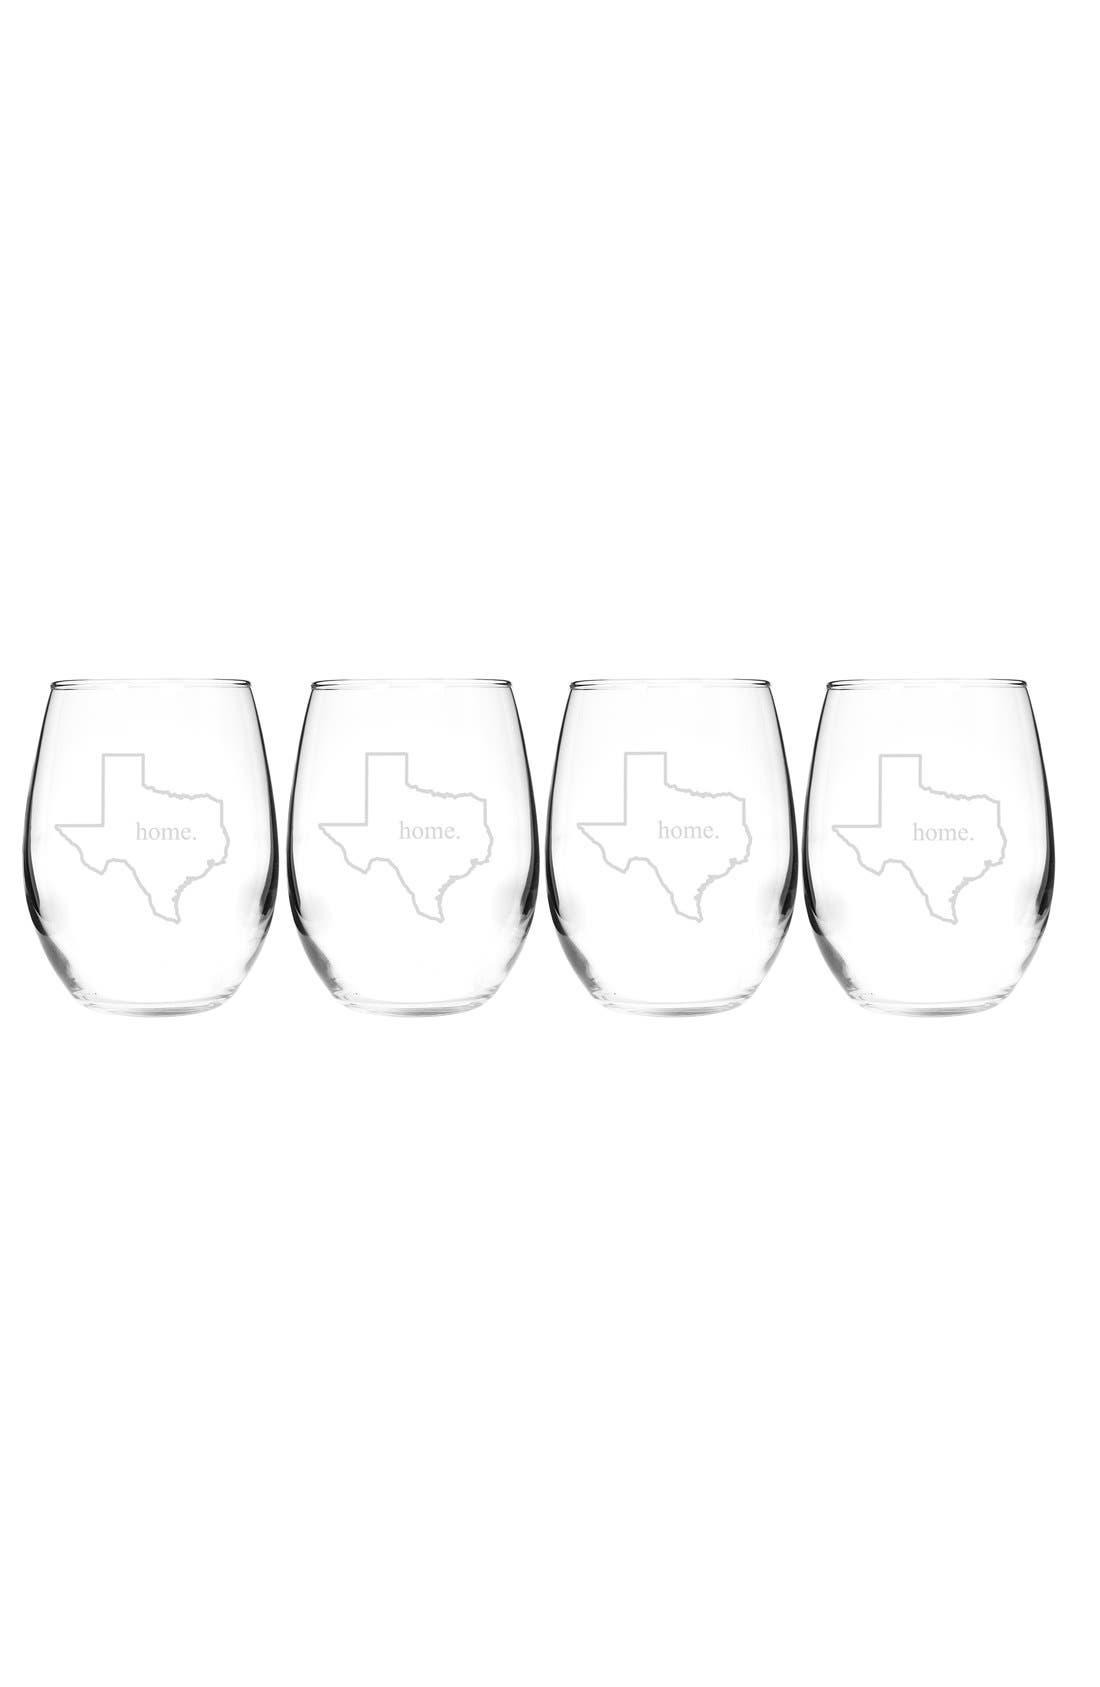 Home State Set of 4 Stemless Wine Glasses,                             Main thumbnail 44, color,